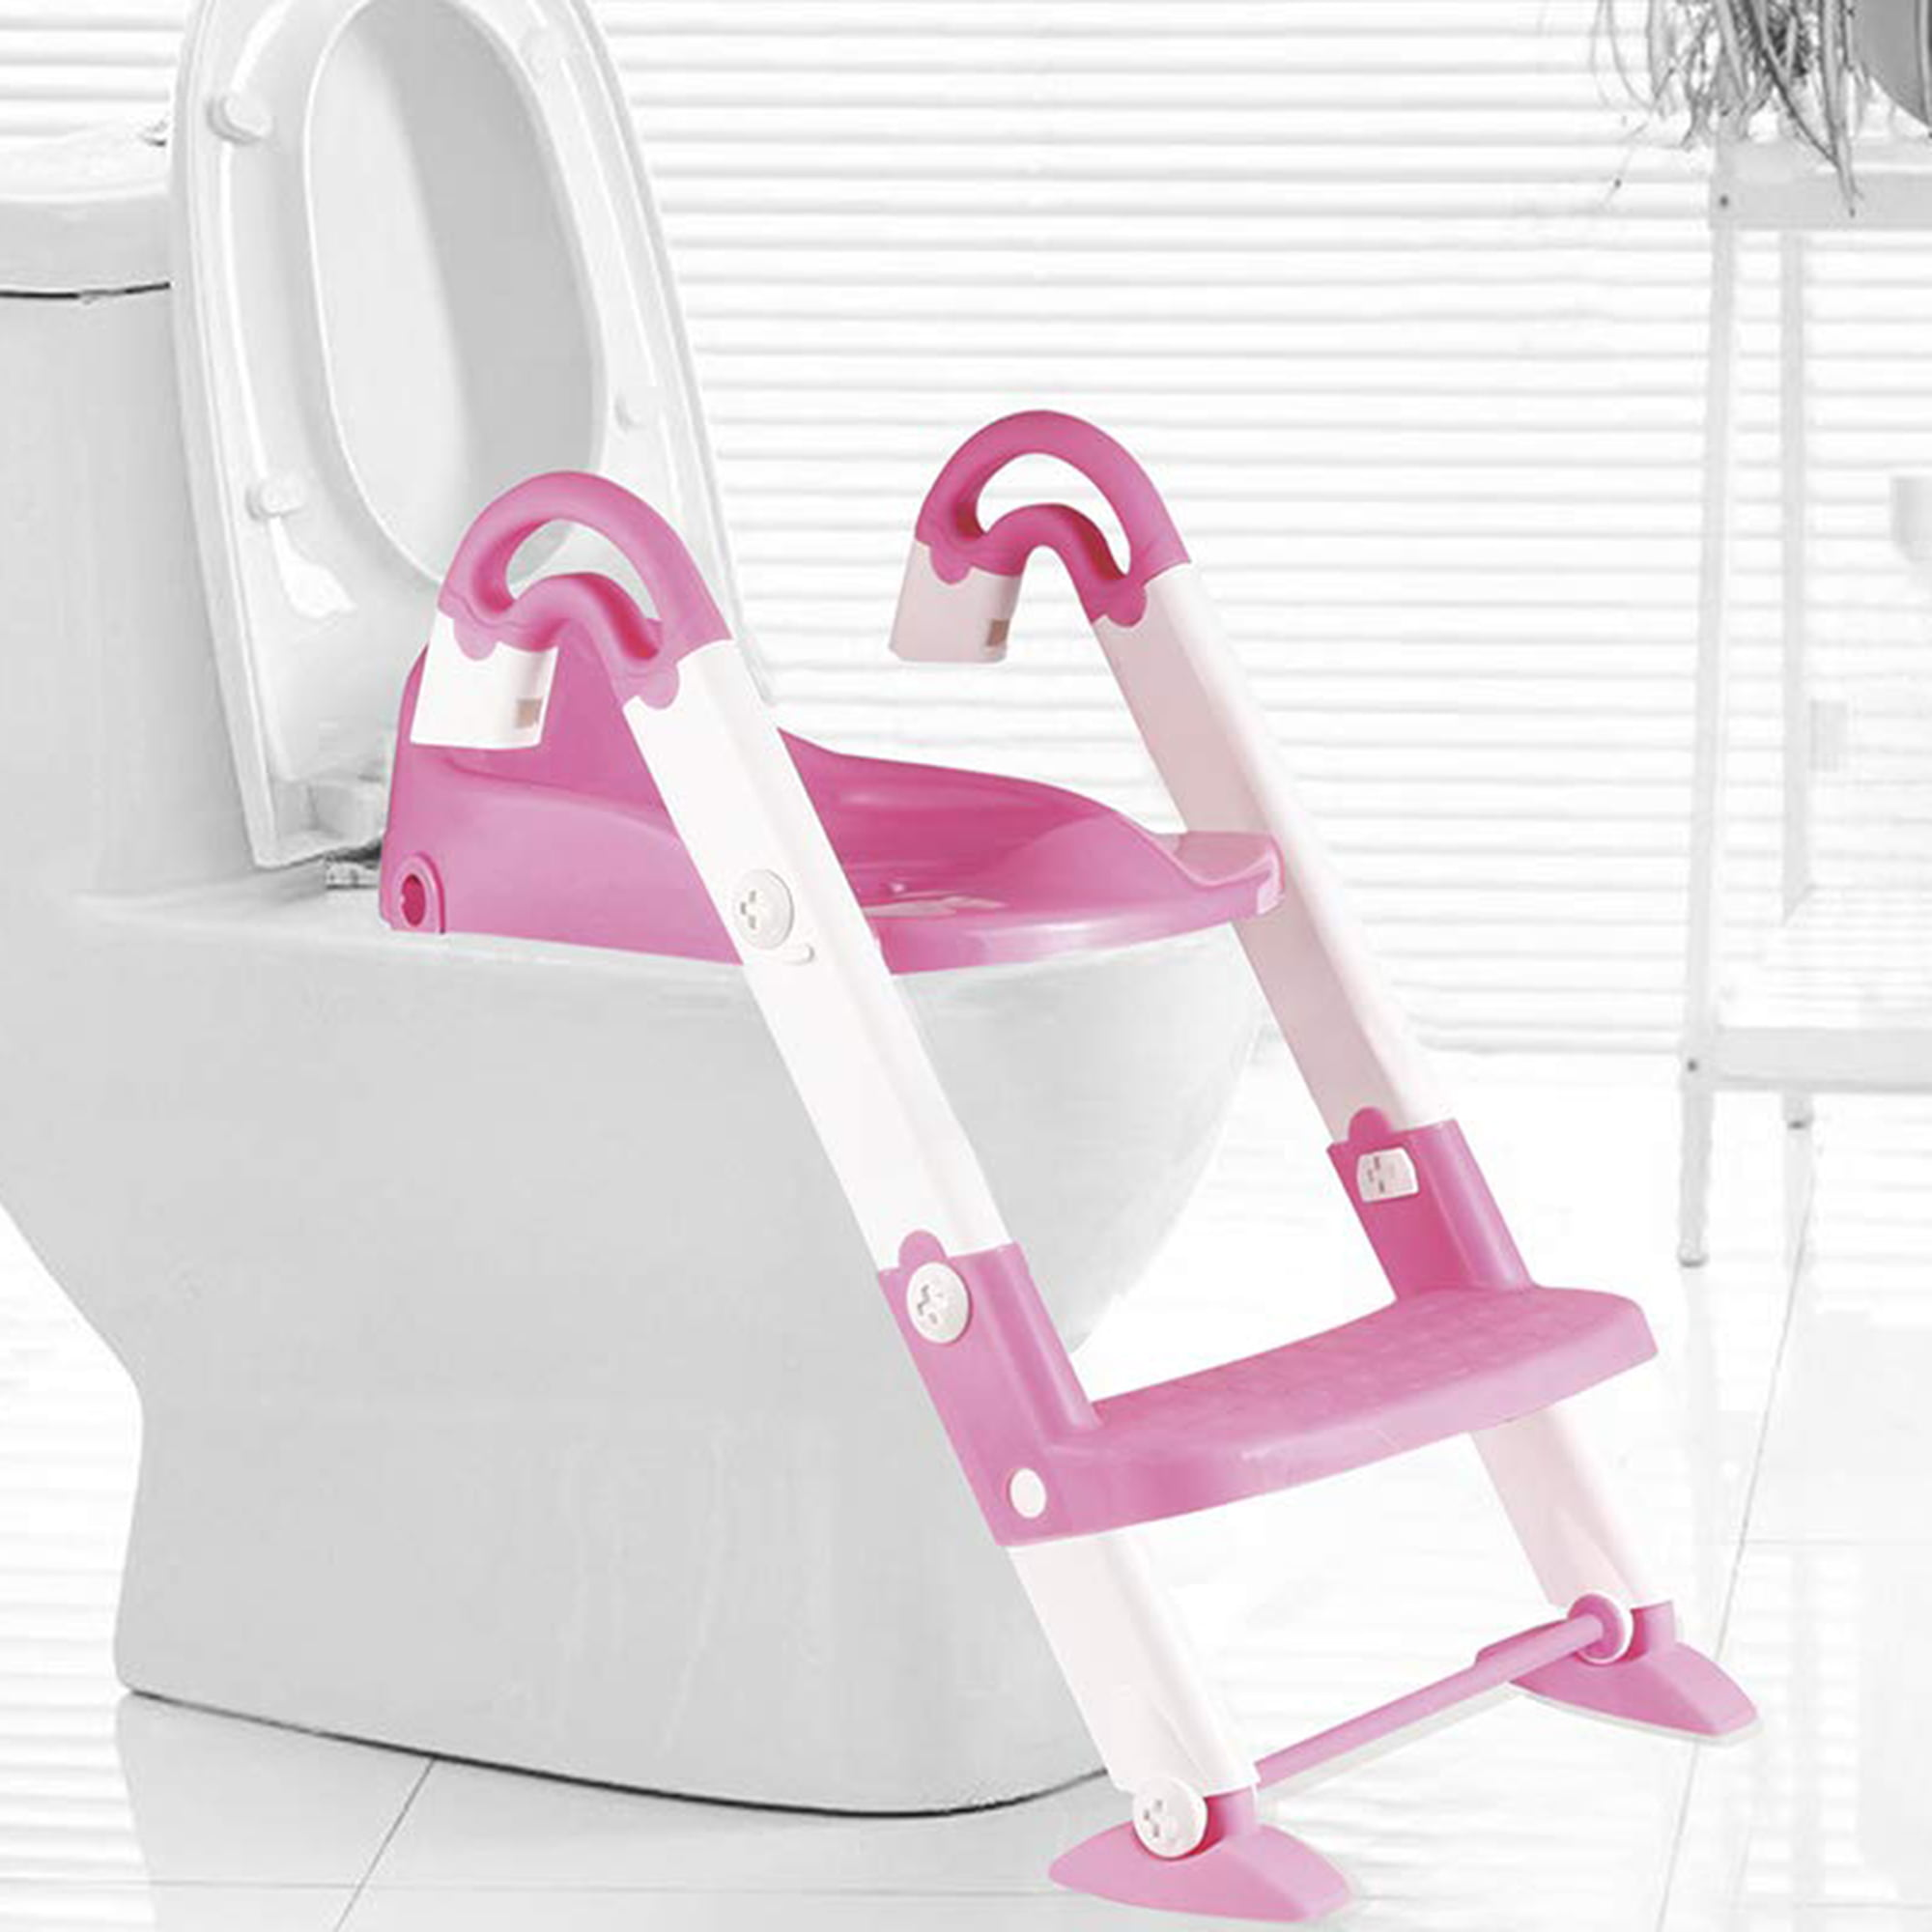 Click here to buy KARMAS PRODUCT 3 in 1 Kids Seat Toilet Trainer,Stepstool Potty Training Seat with Sturdy Non-Slip Ladder... by KARMAS PRODUCT.